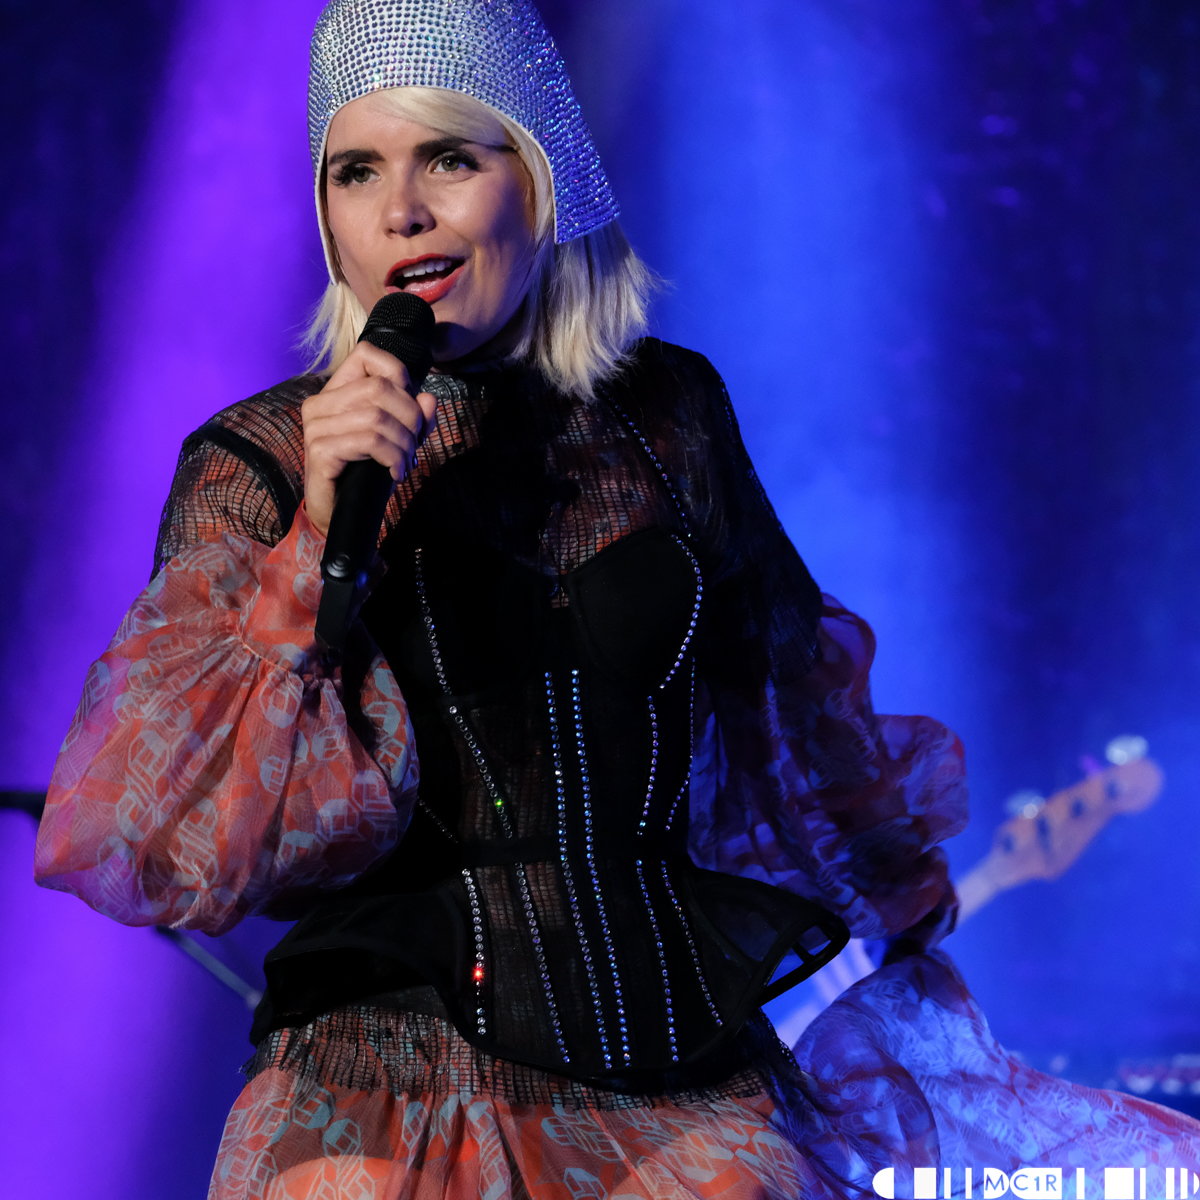 Paloma Faith at Belladrum 2018 17 - Paloma Faith, Friday Belladrum 2018 - IMAGES